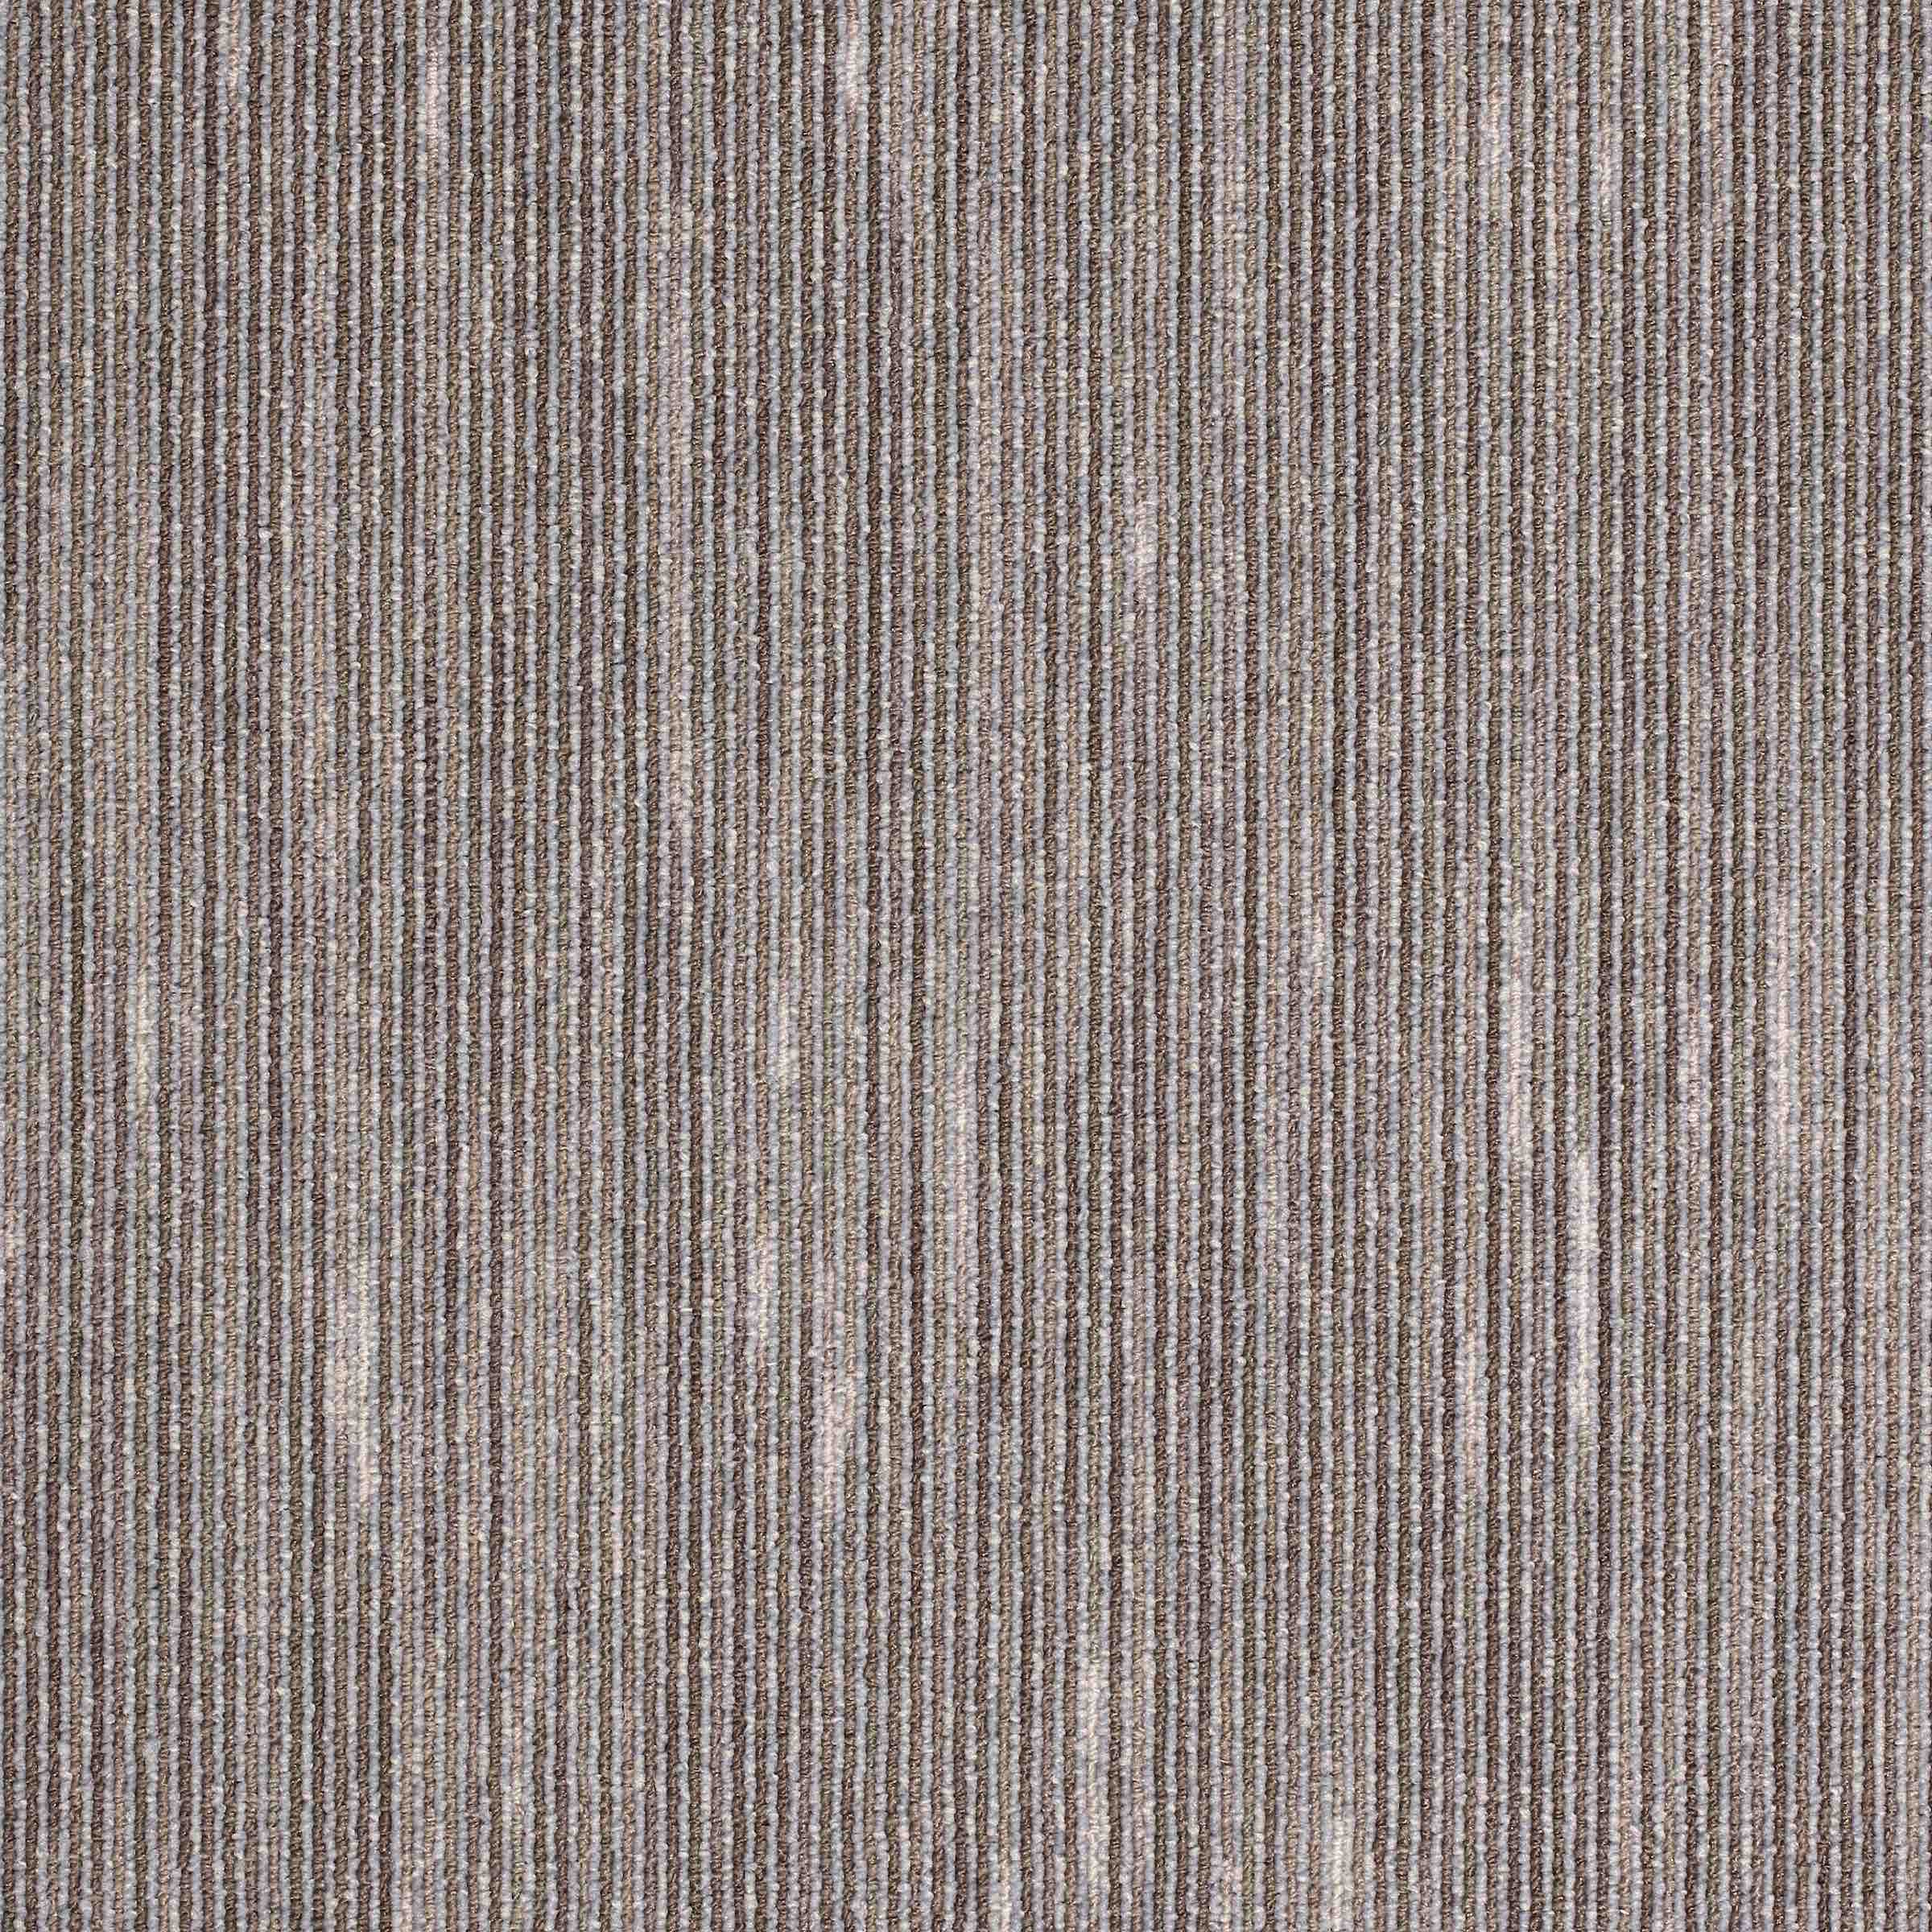 Workspace Linear | Nobu Grey | Paragon Carpet Tiles | Commercial Carpet Tiles